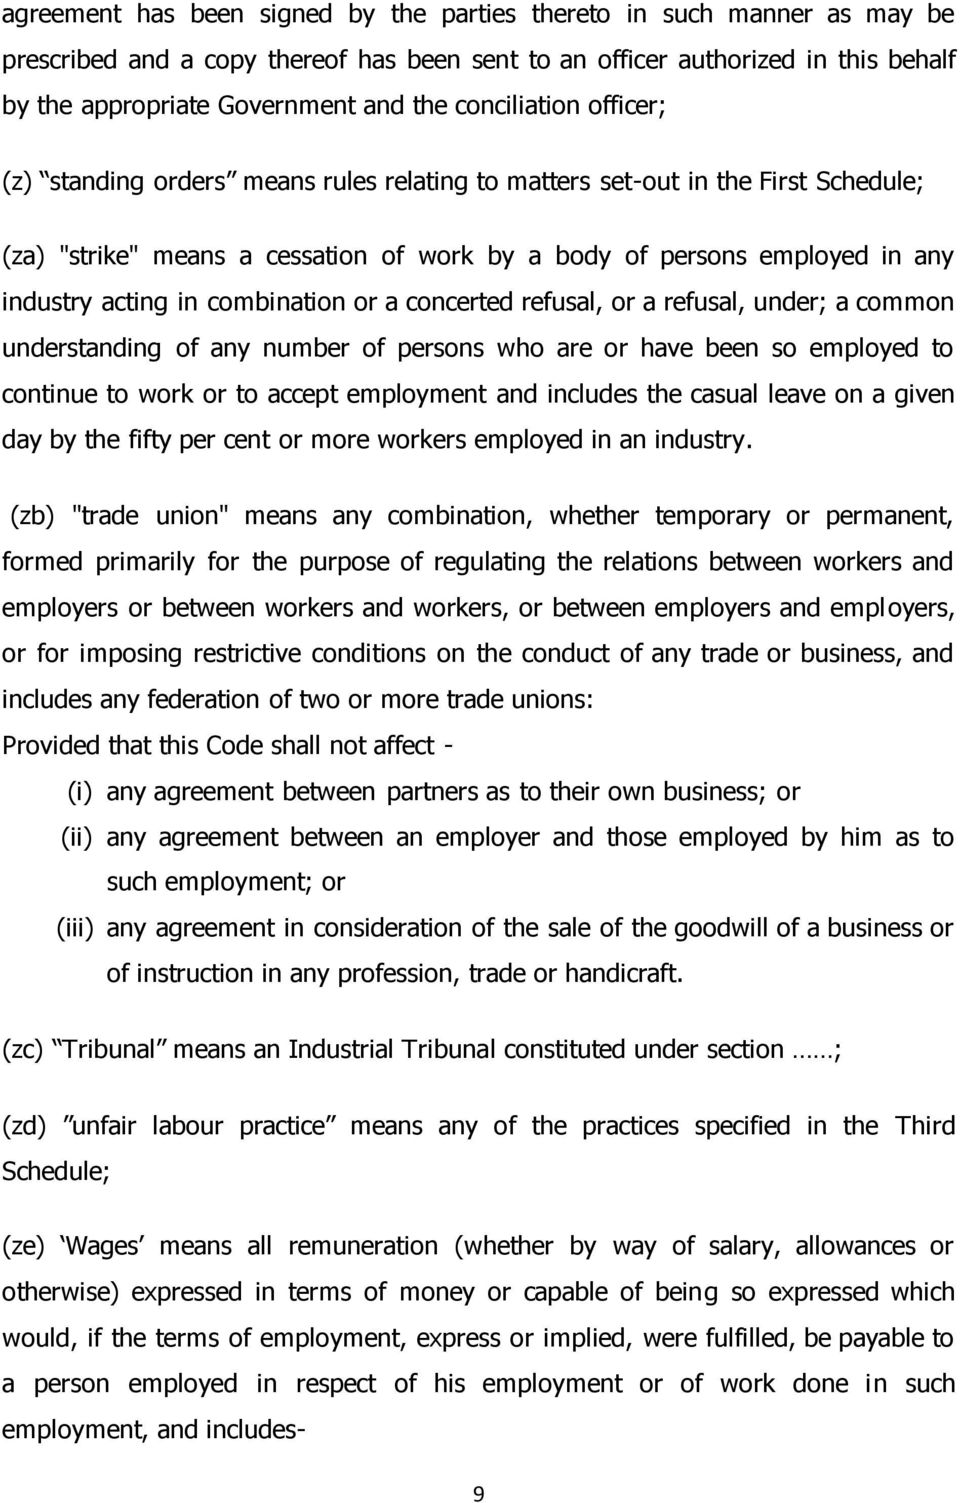 Labour Code On Industrial Relations Bill Arrangement Of The